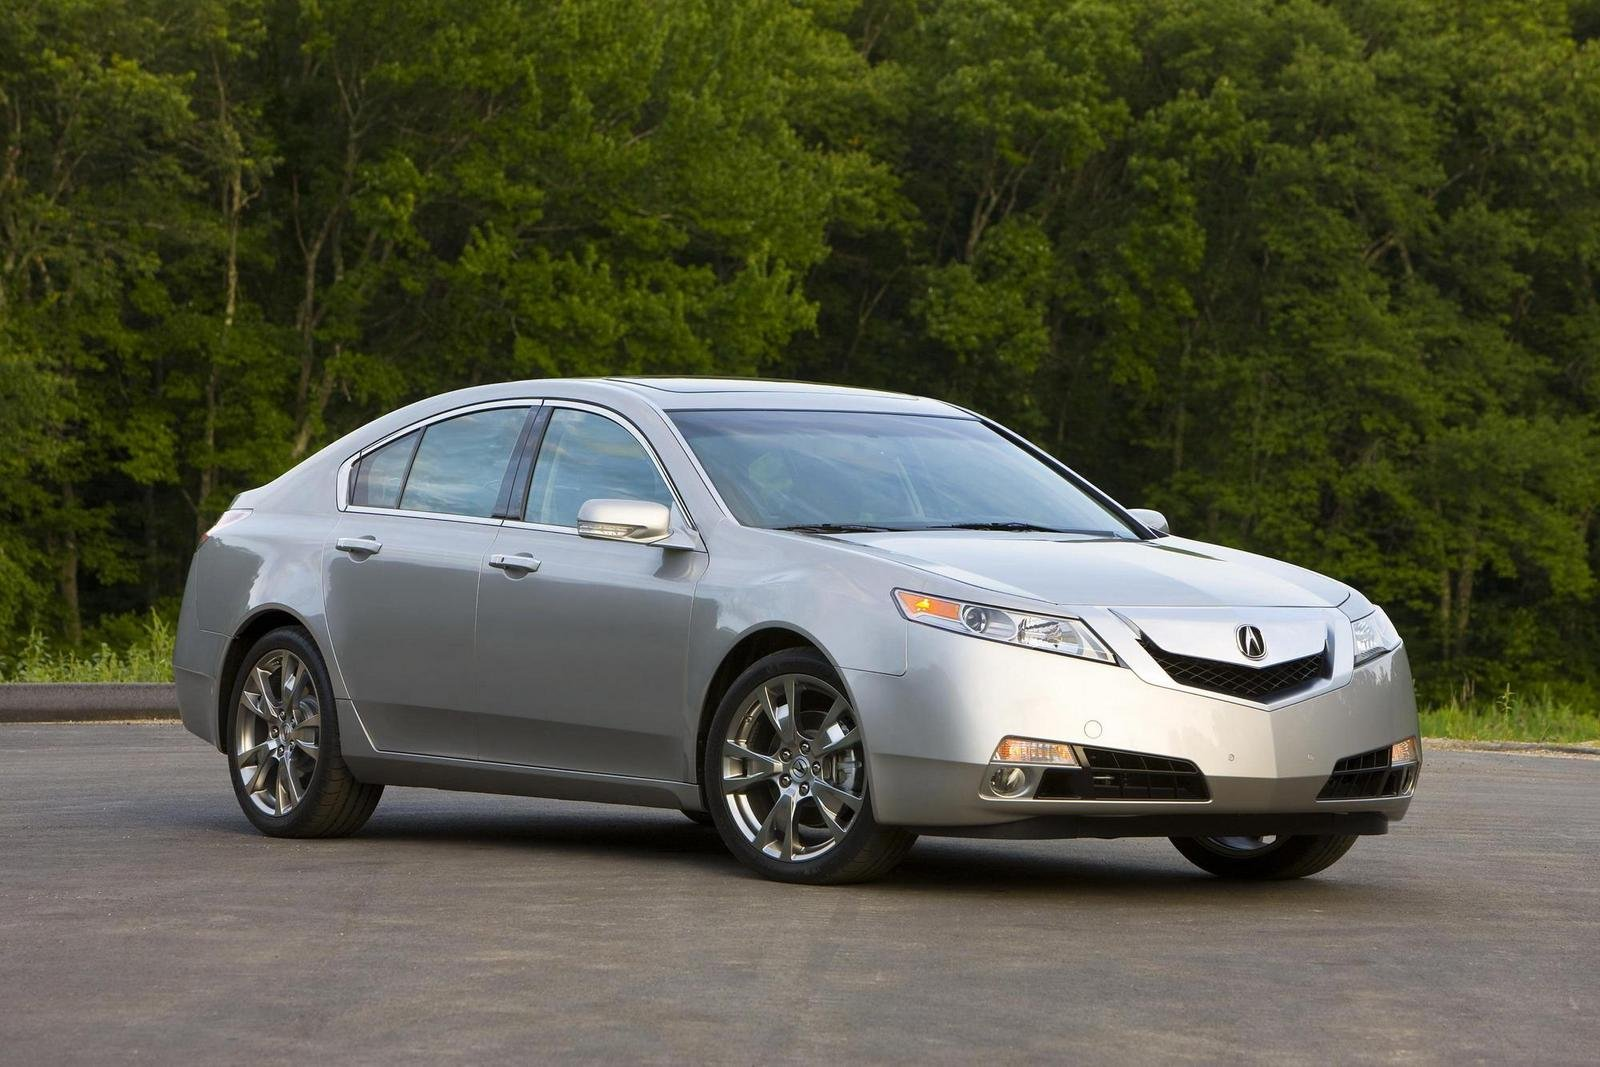 2010 acura tl picture 326173 car review top speed. Black Bedroom Furniture Sets. Home Design Ideas